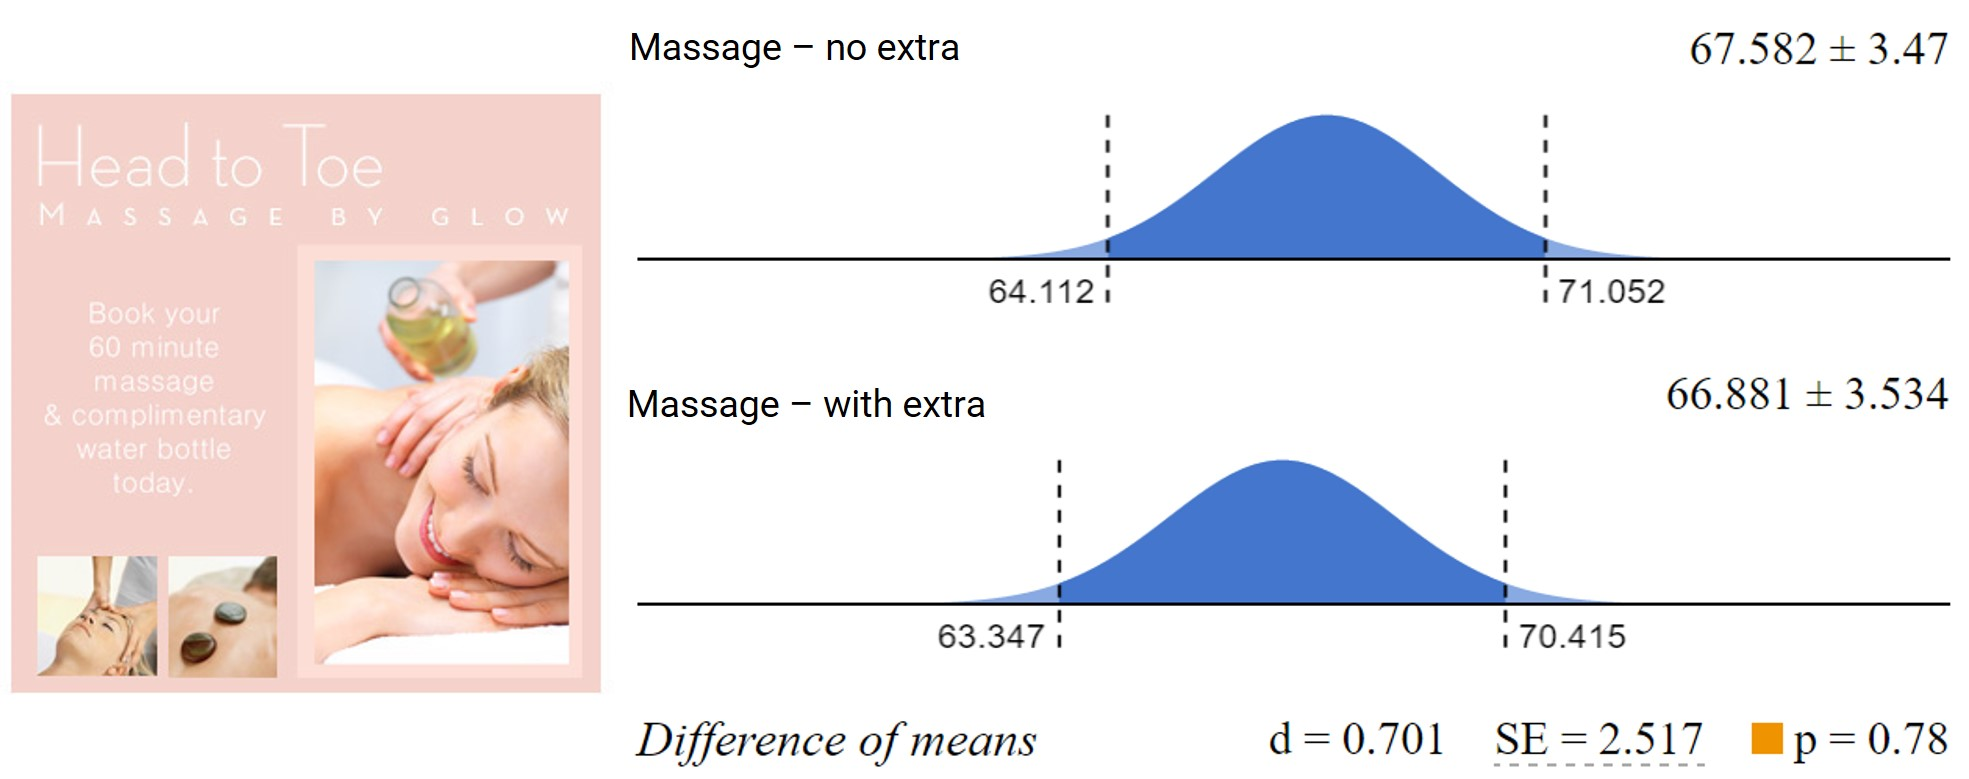 Confidence intervals and estimated difference between value estimations of the massage when it was offered by itself (top) and with a cheap 'extra' (bottom)